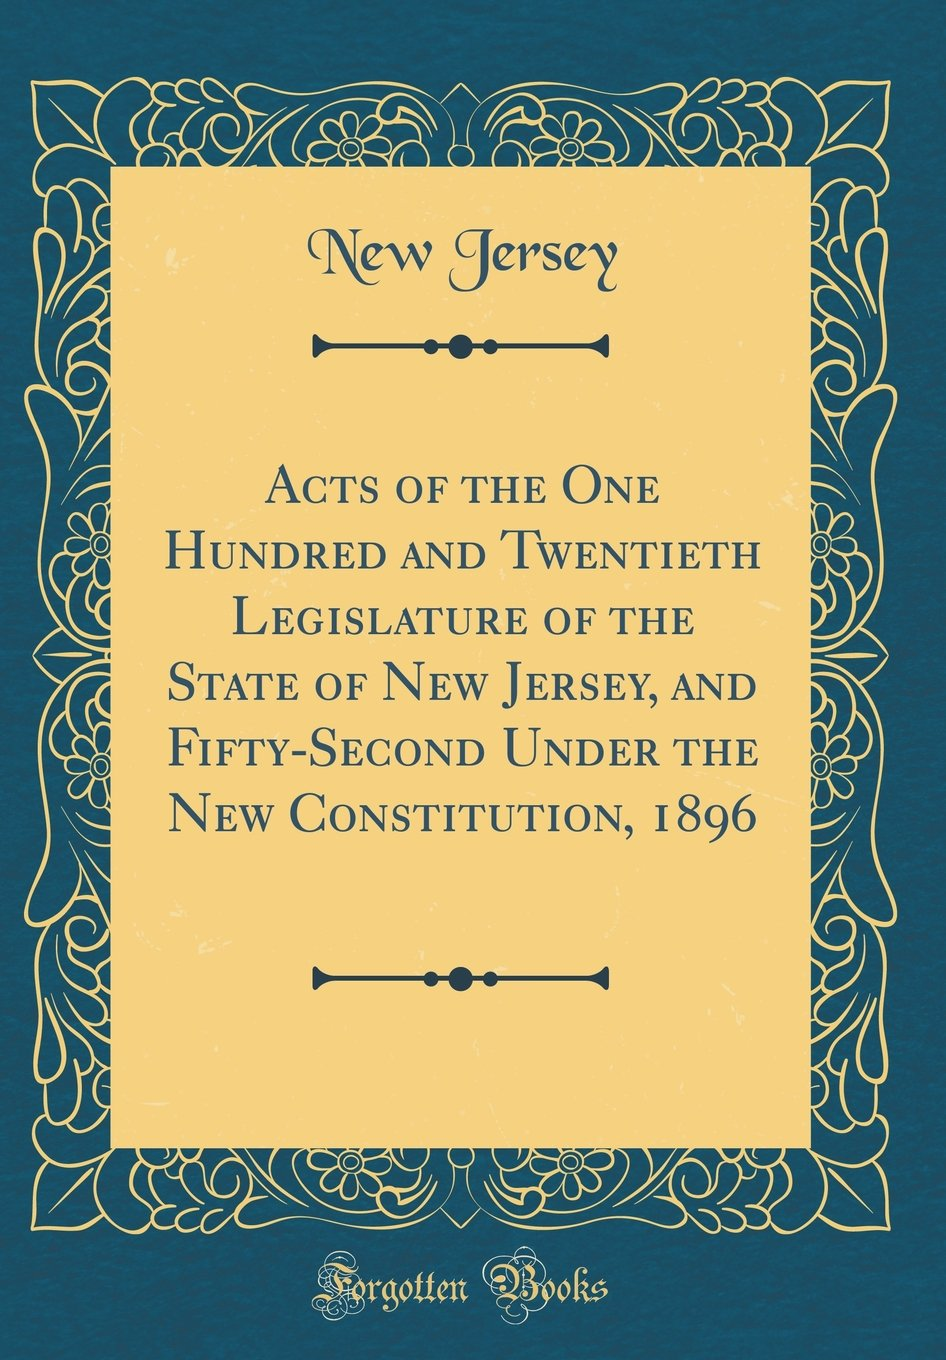 Acts of the One Hundred and Twentieth Legislature of the State of New Jersey, and Fifty-Second Under the New Constitution, 1896 (Classic Reprint) pdf